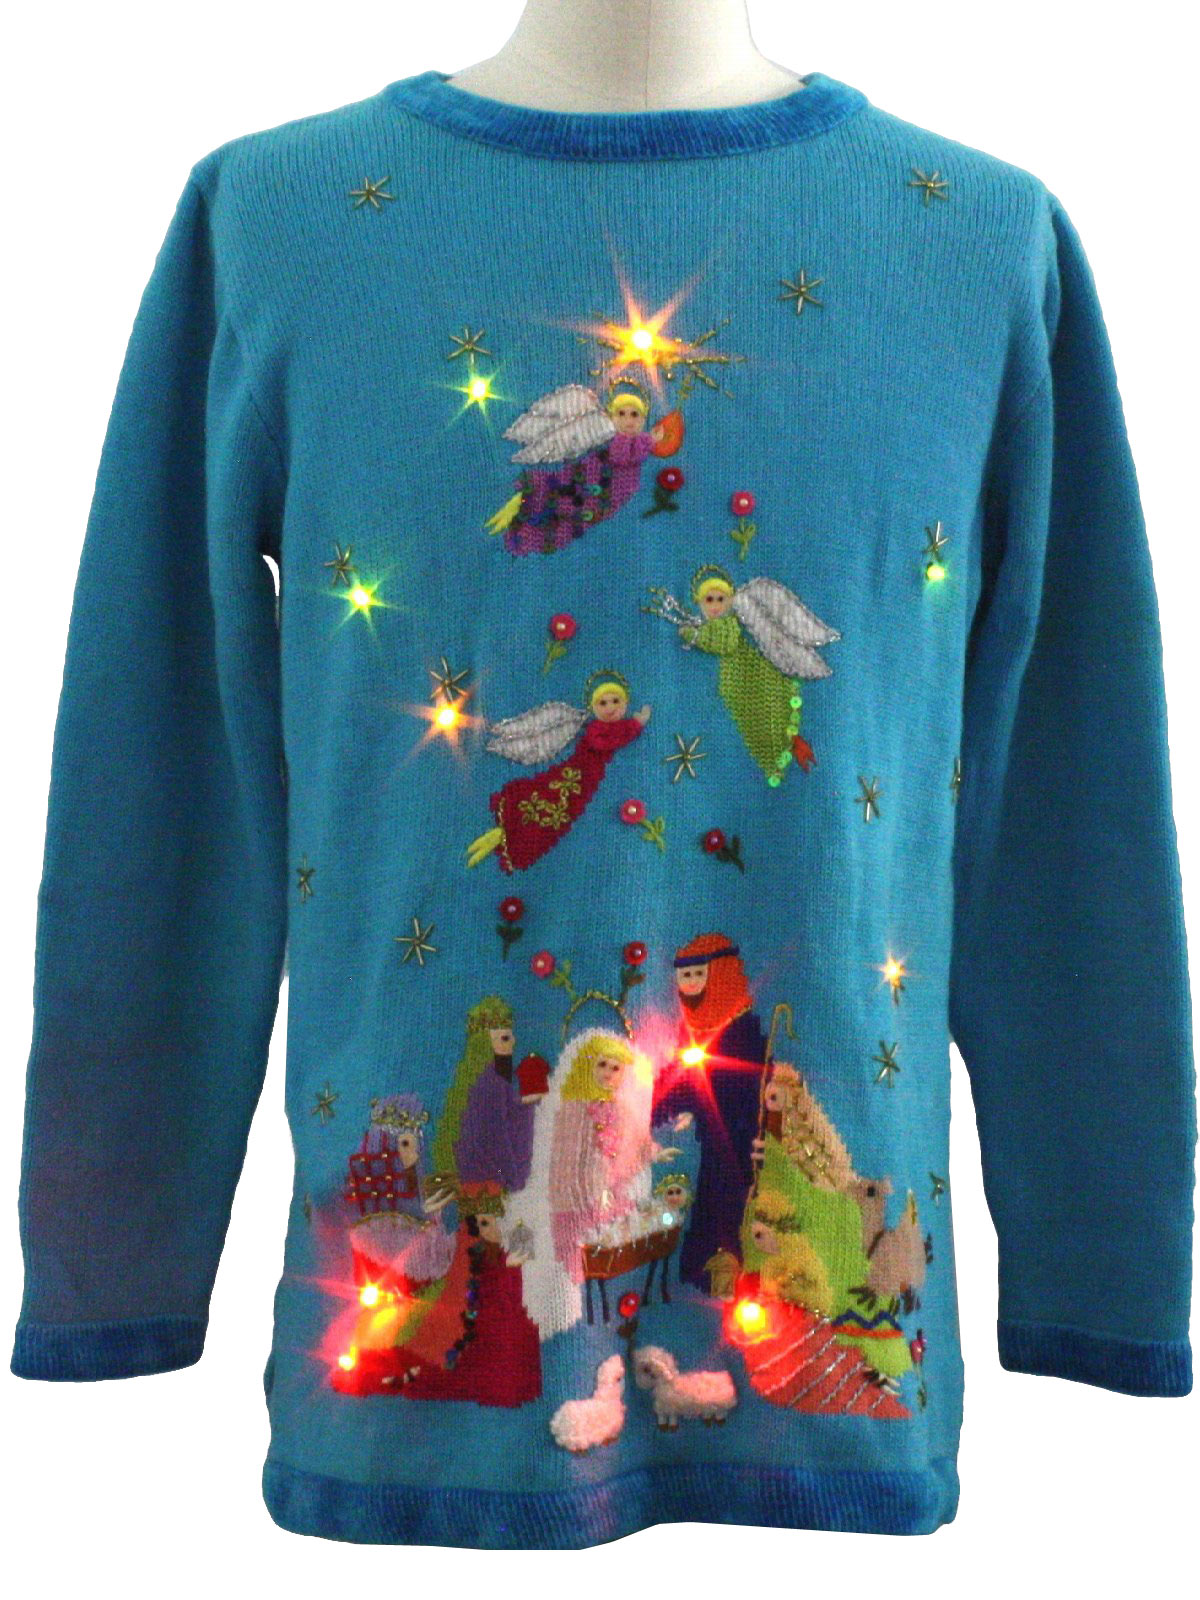 Womens Lightup Ugly Christmas Sweater: -Quacker Factory- Womens ...